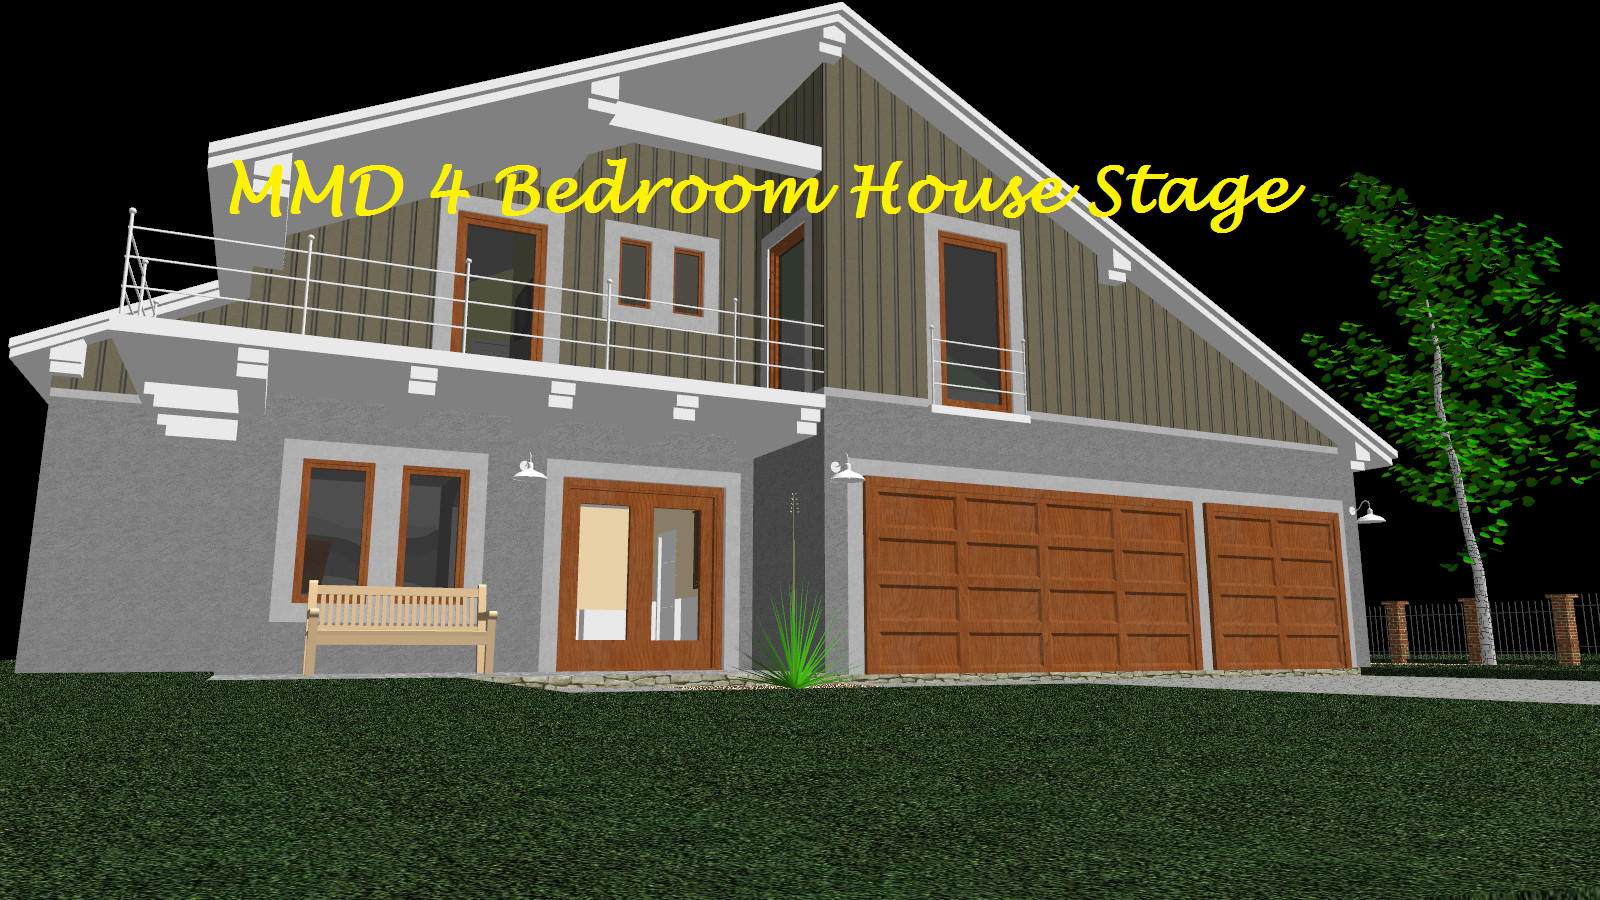 Mmd 4 Bedroom House Stage Converted In Sketchup By